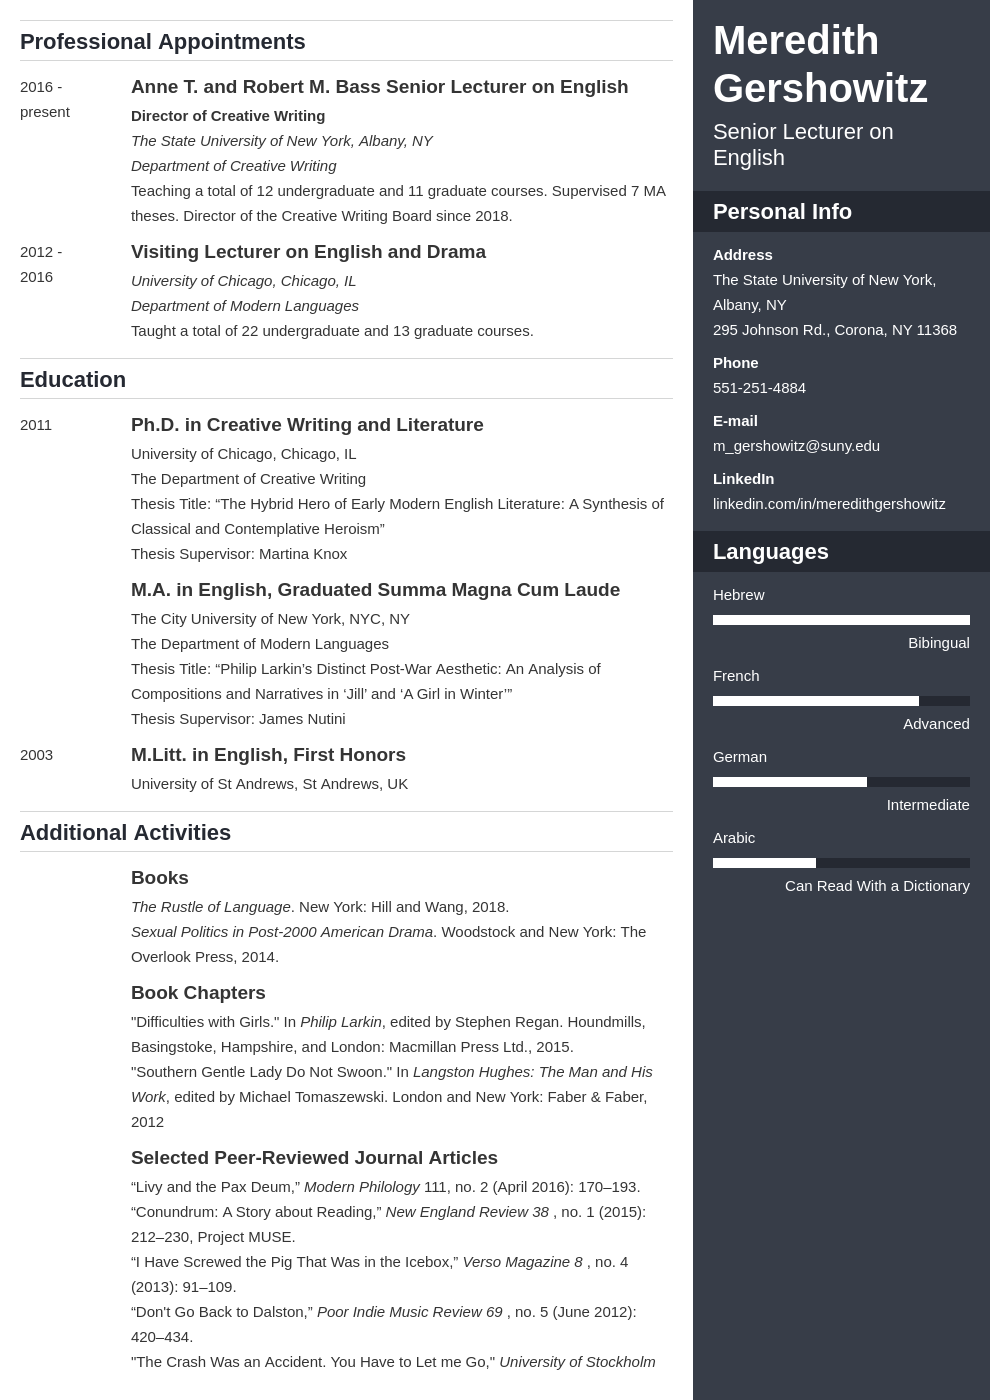 cv academic template enfold